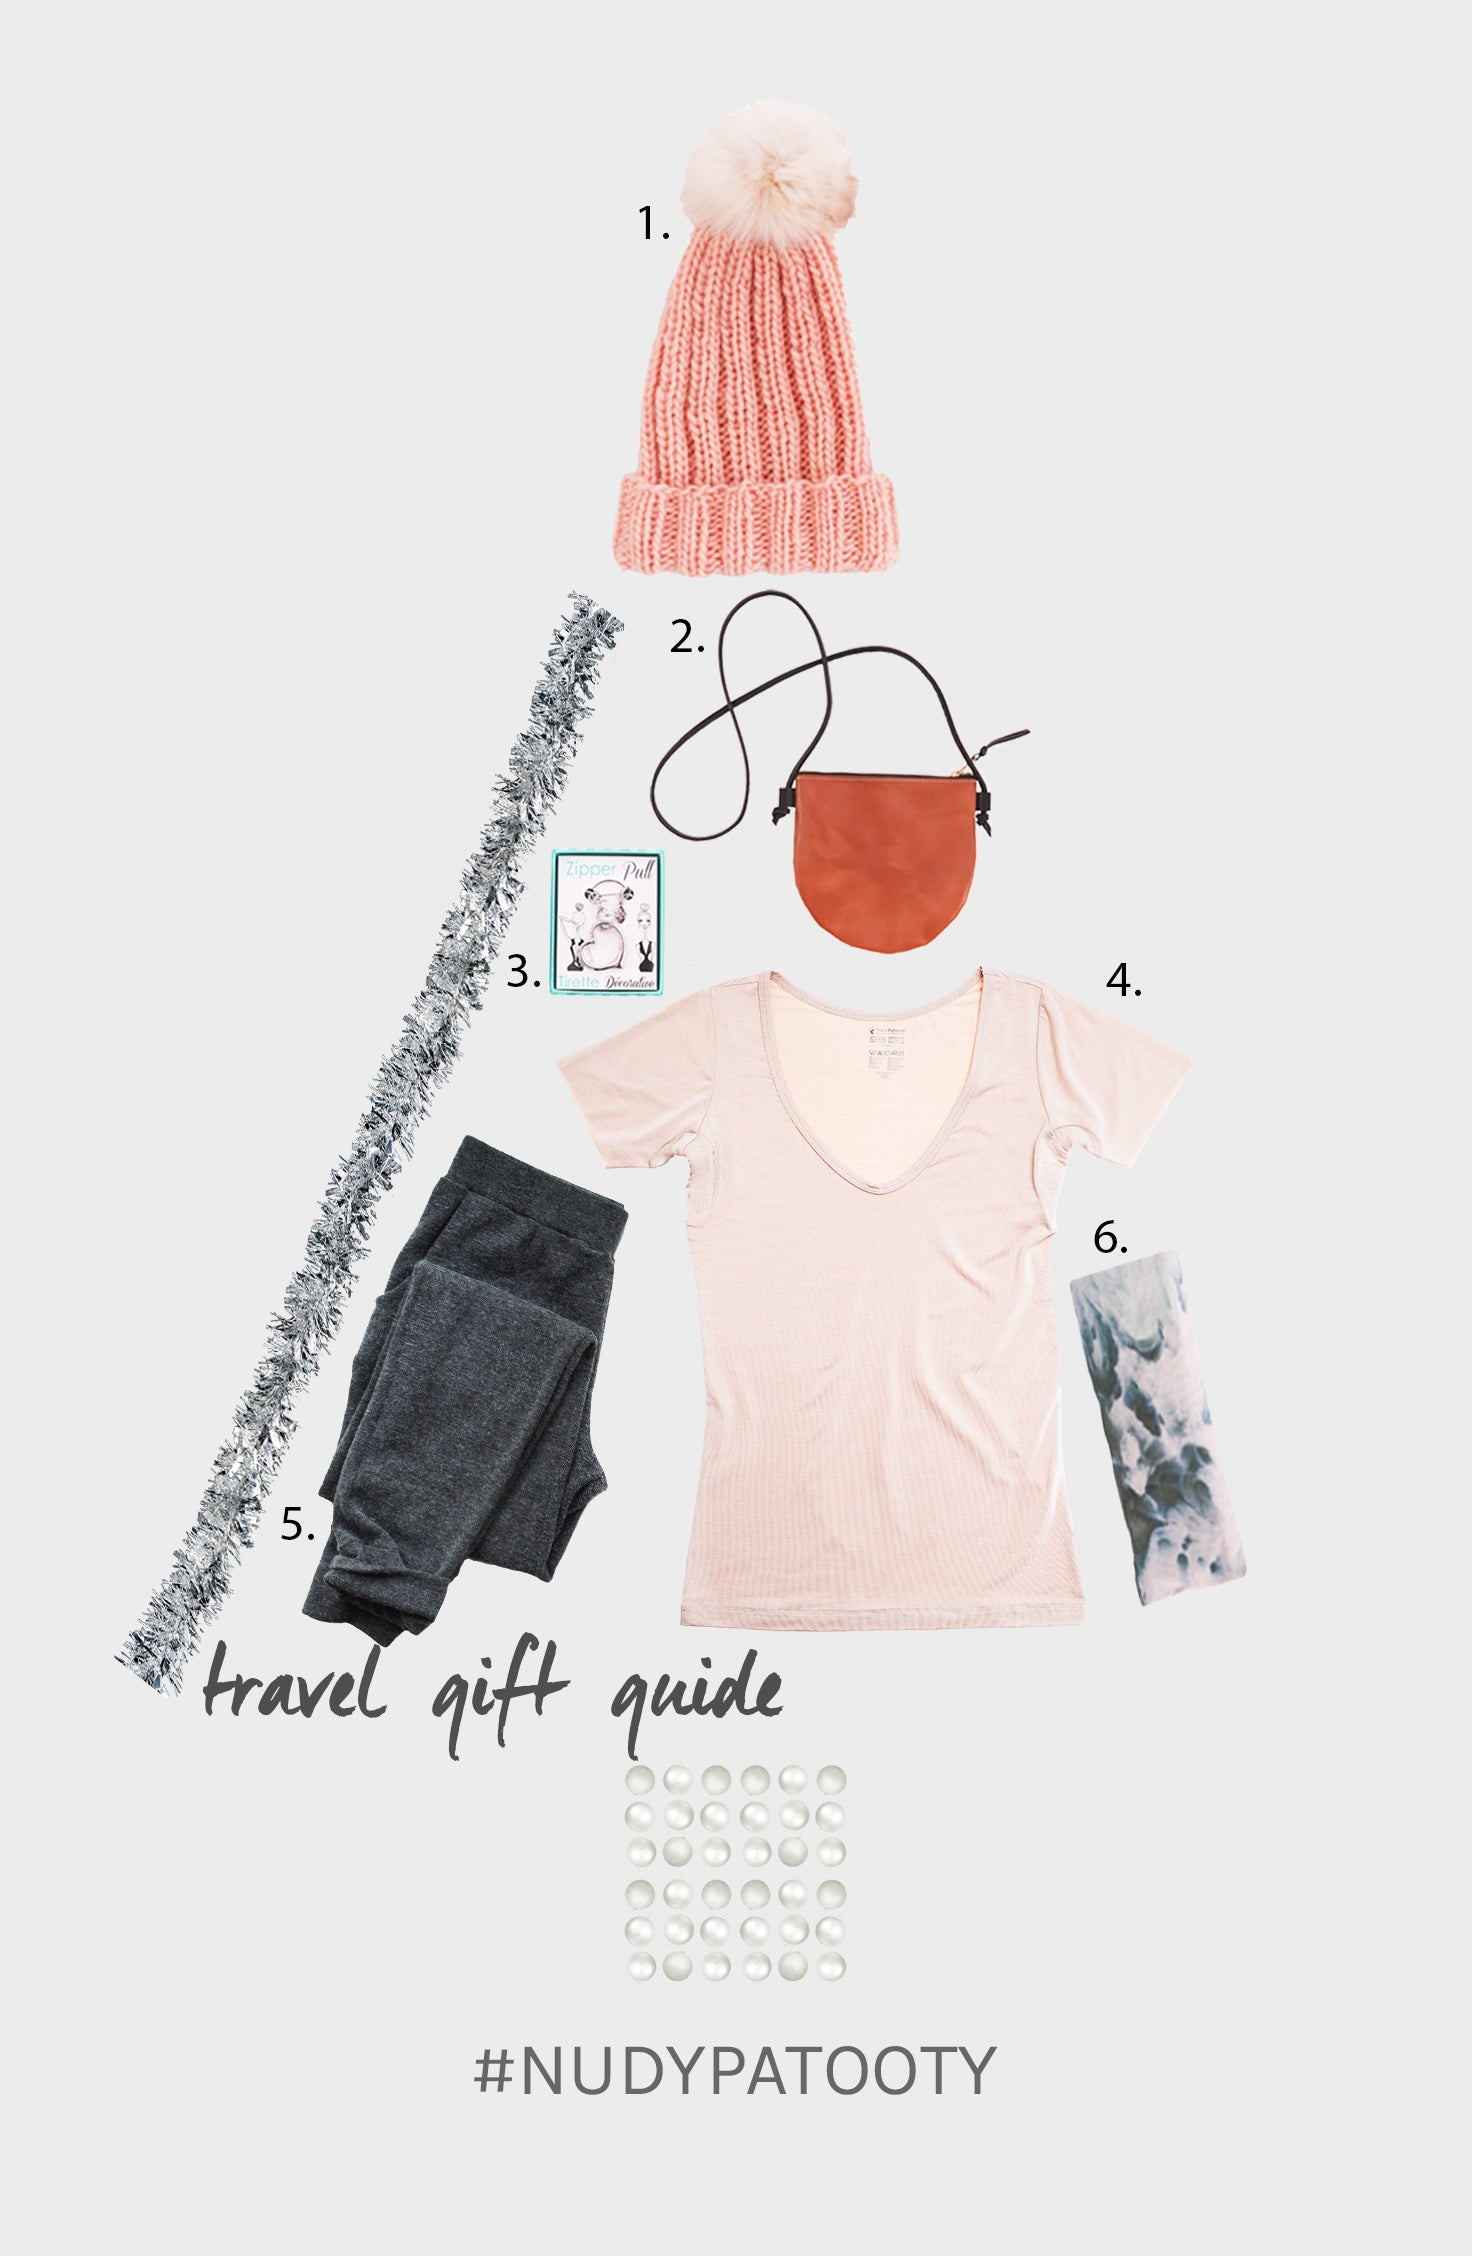 Nudy Patooty Holiday Gift Guide for the Jet Setter 2016